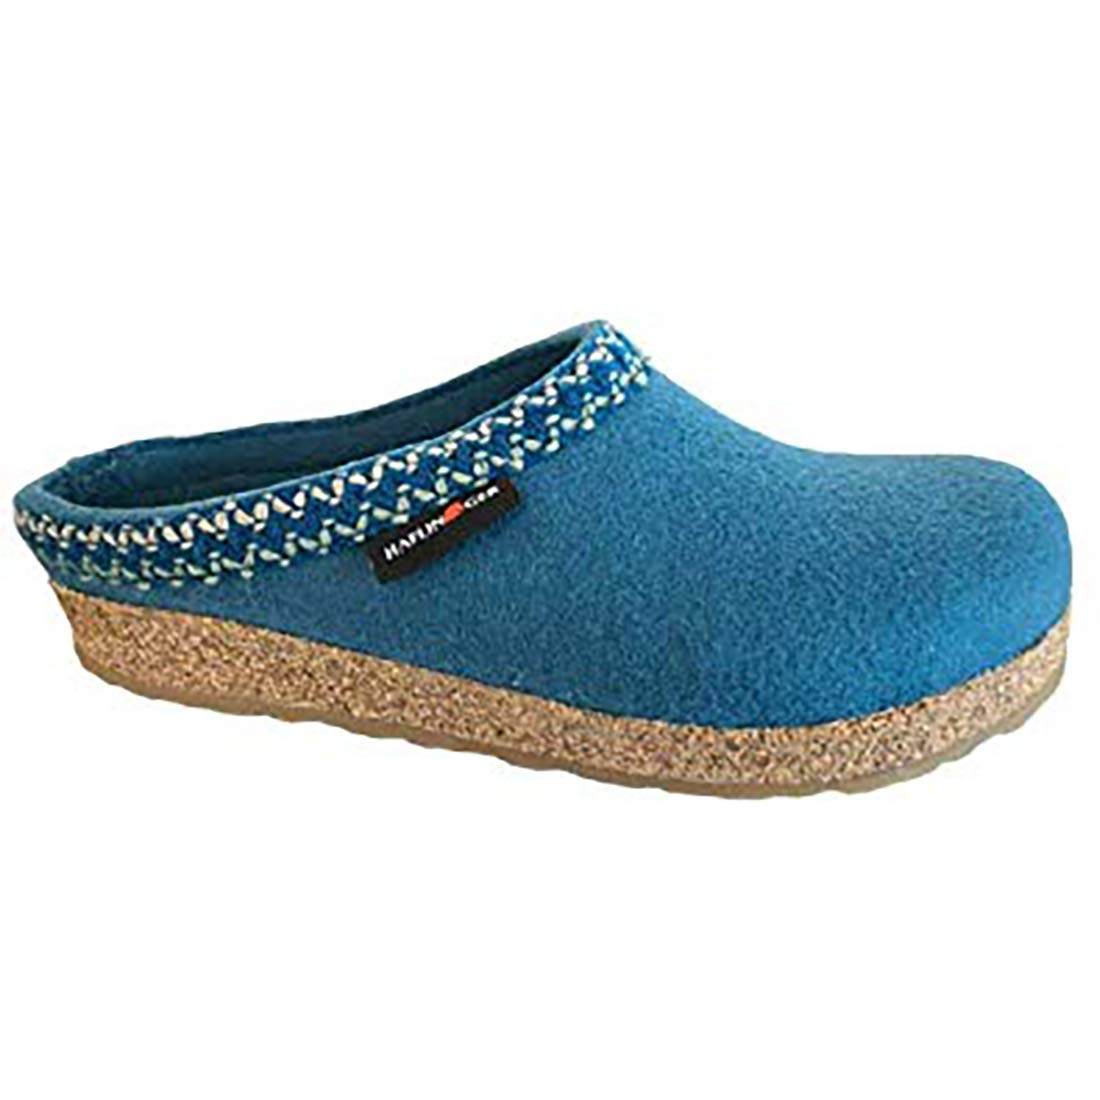 HAFLINGER Grizzly Zig Zag Women's Peacock Mule Clog - 36